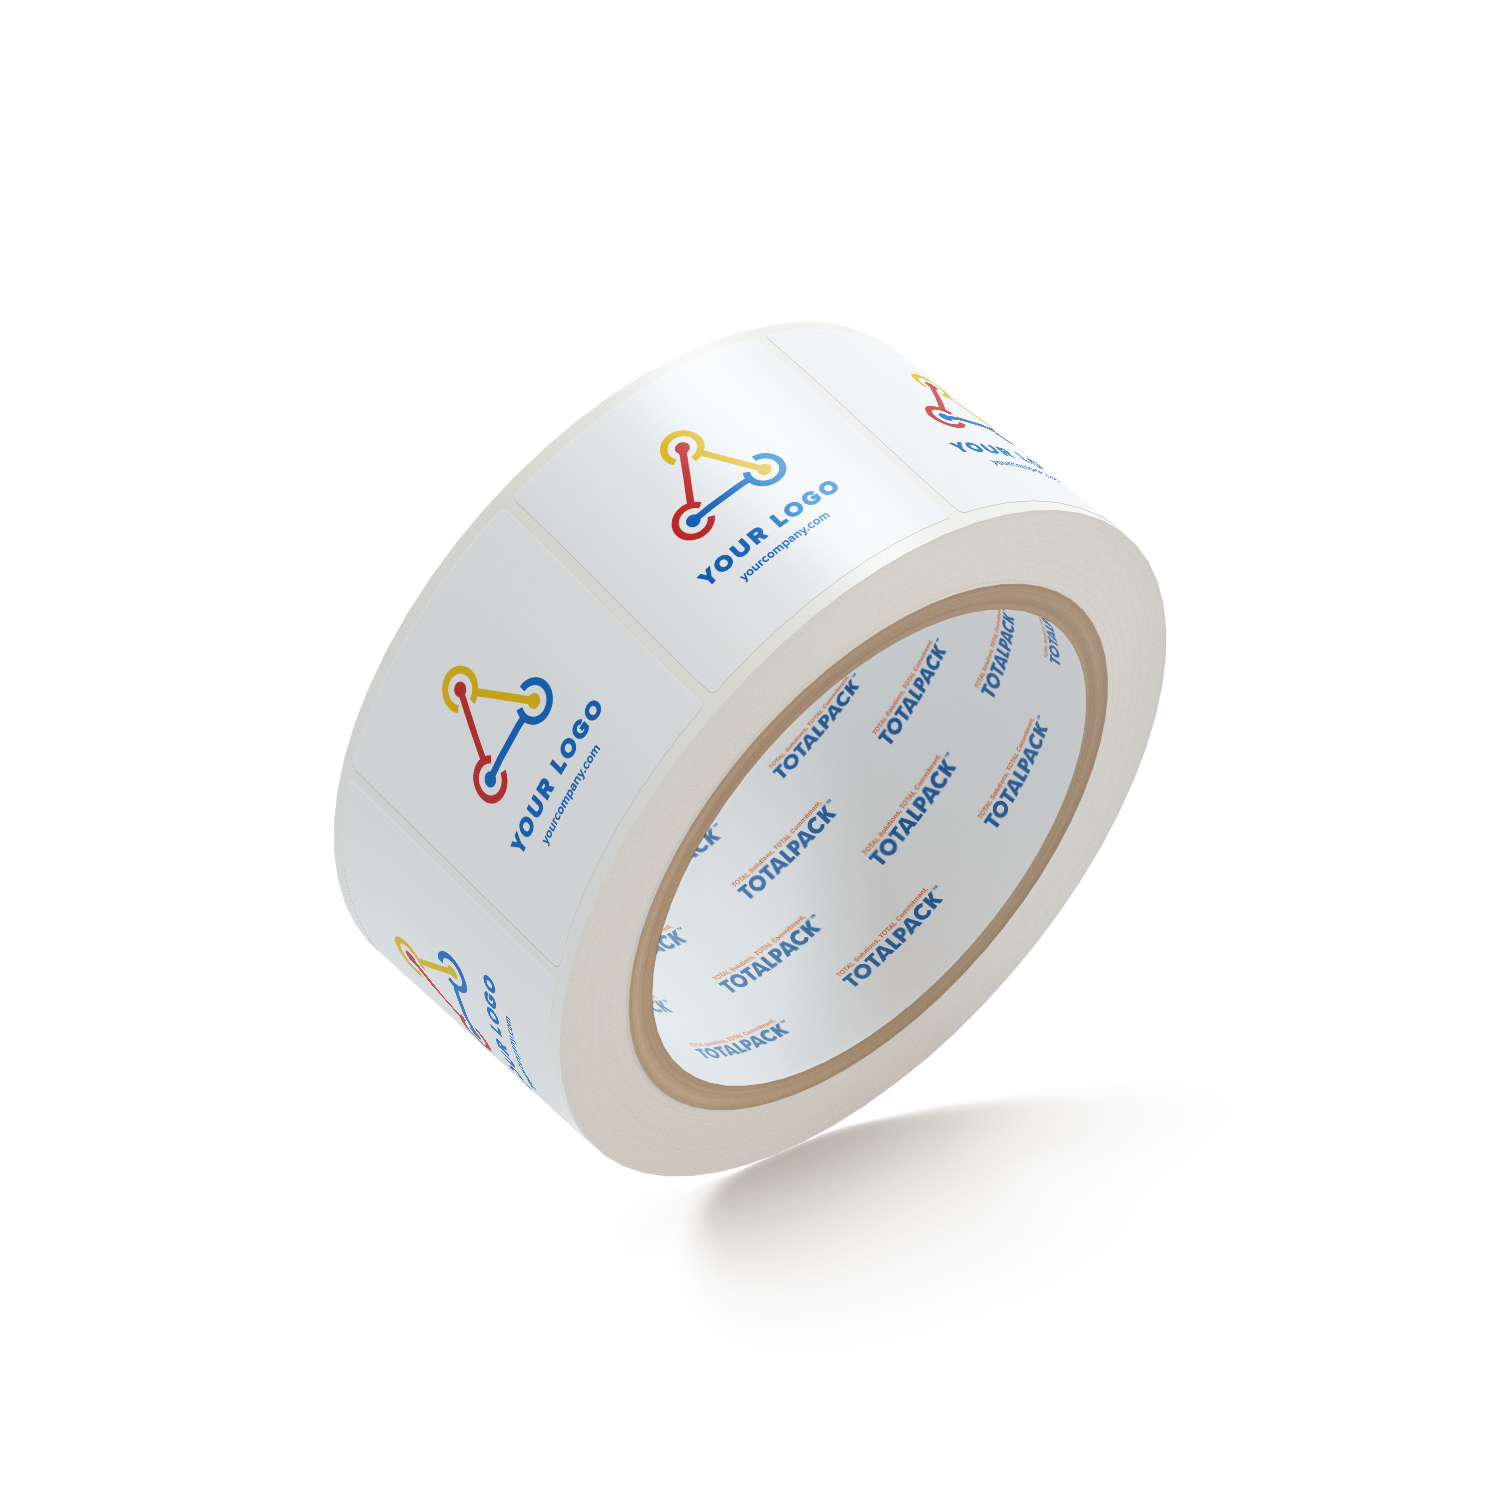 Custom square stickers by totalpack 2 x 2 round corners white 1000 labels per roll